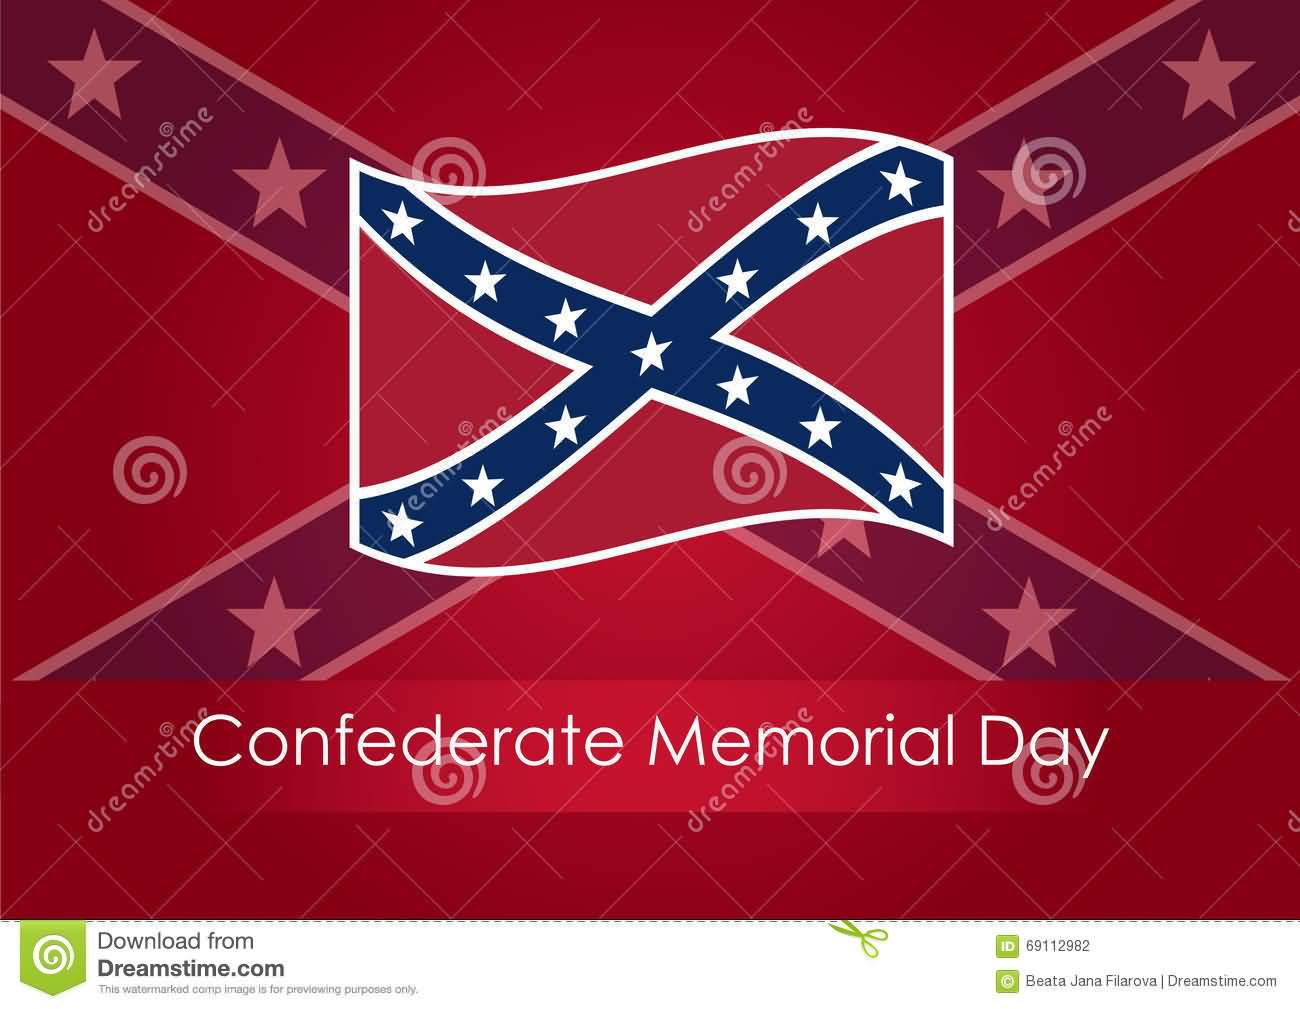 20-Happy Confederate Memorial Day